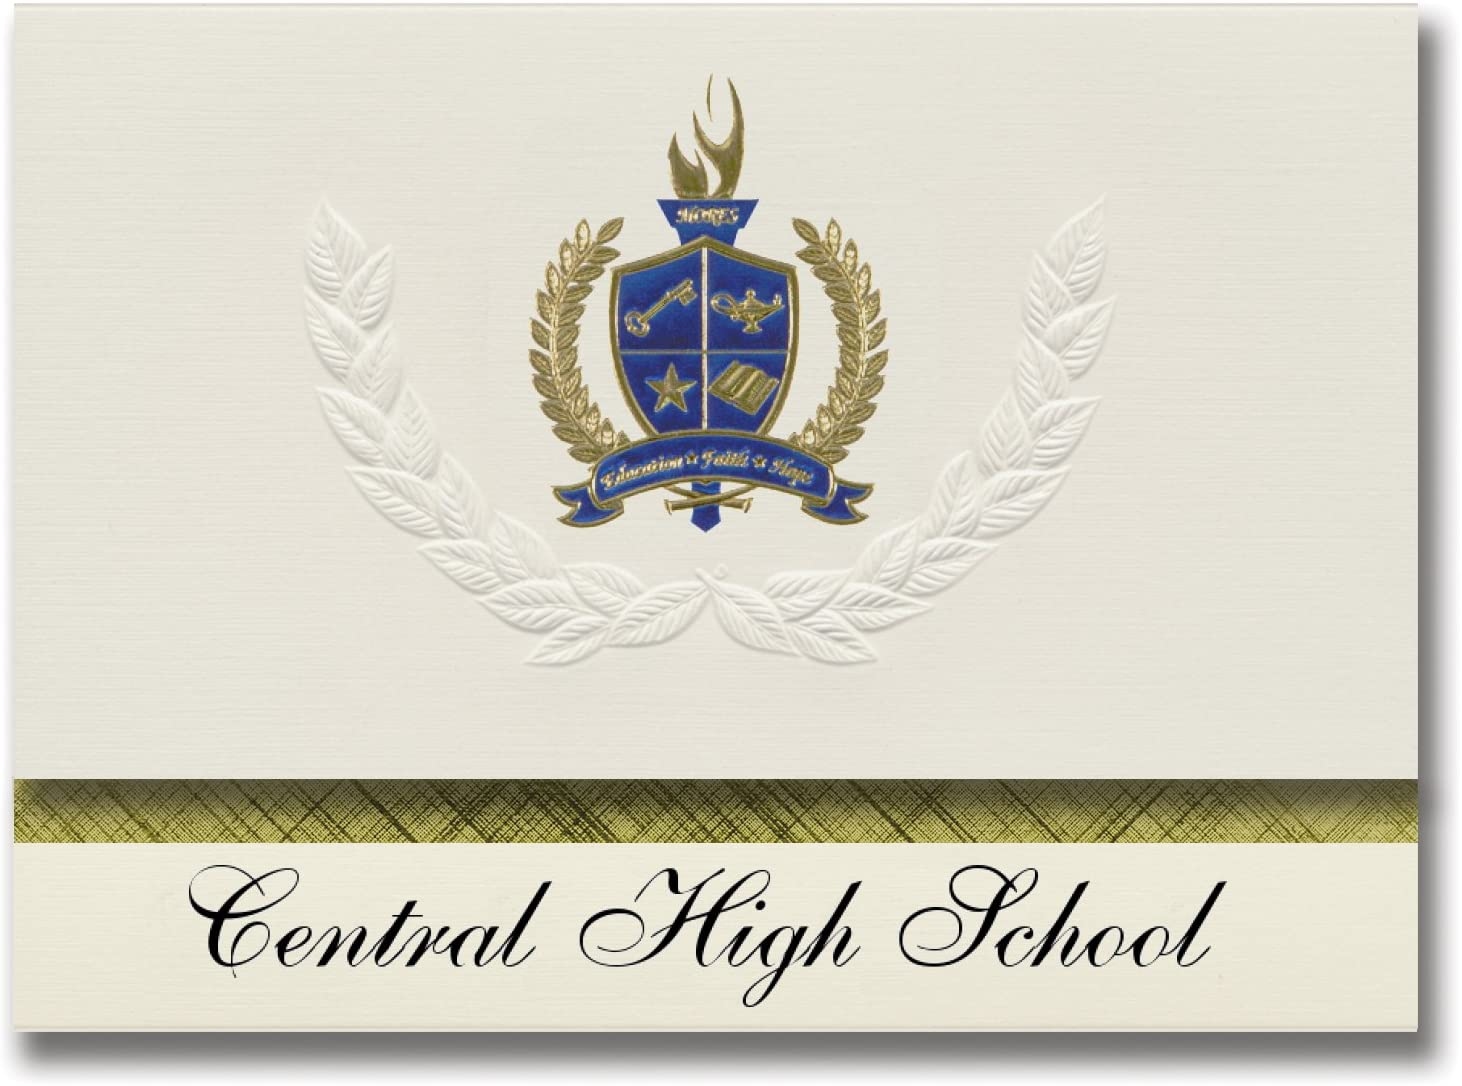 Signature Announcements Central High School (Hayneville, AL) Graduation Announcements, Presidential style, Elite package of 25 with Gold & Blue Metallic Foil seal